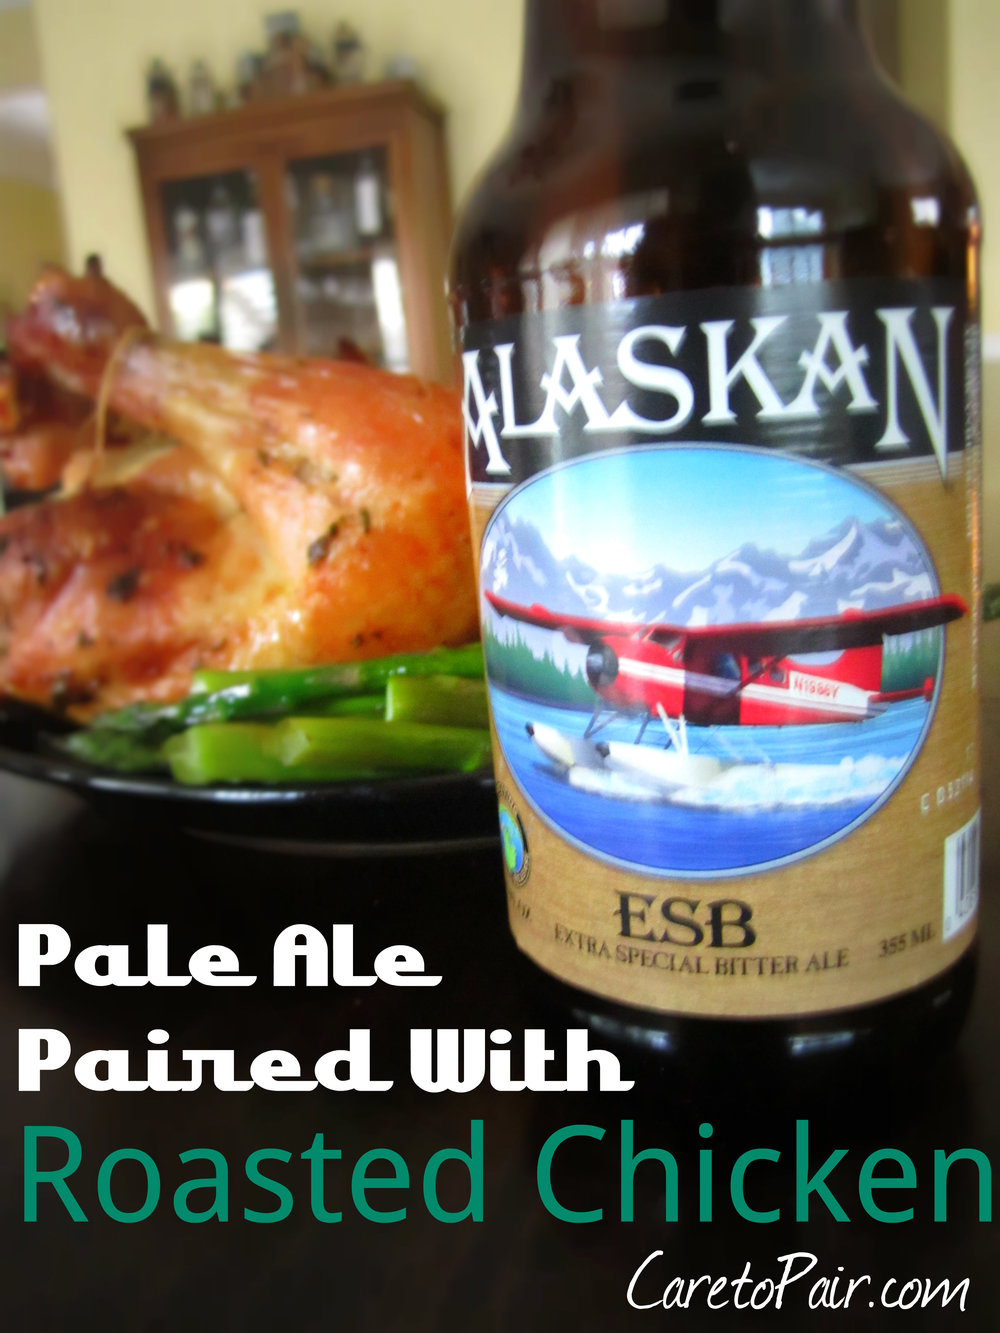 Pale Ale and Roasted Chicken from CaretoPair